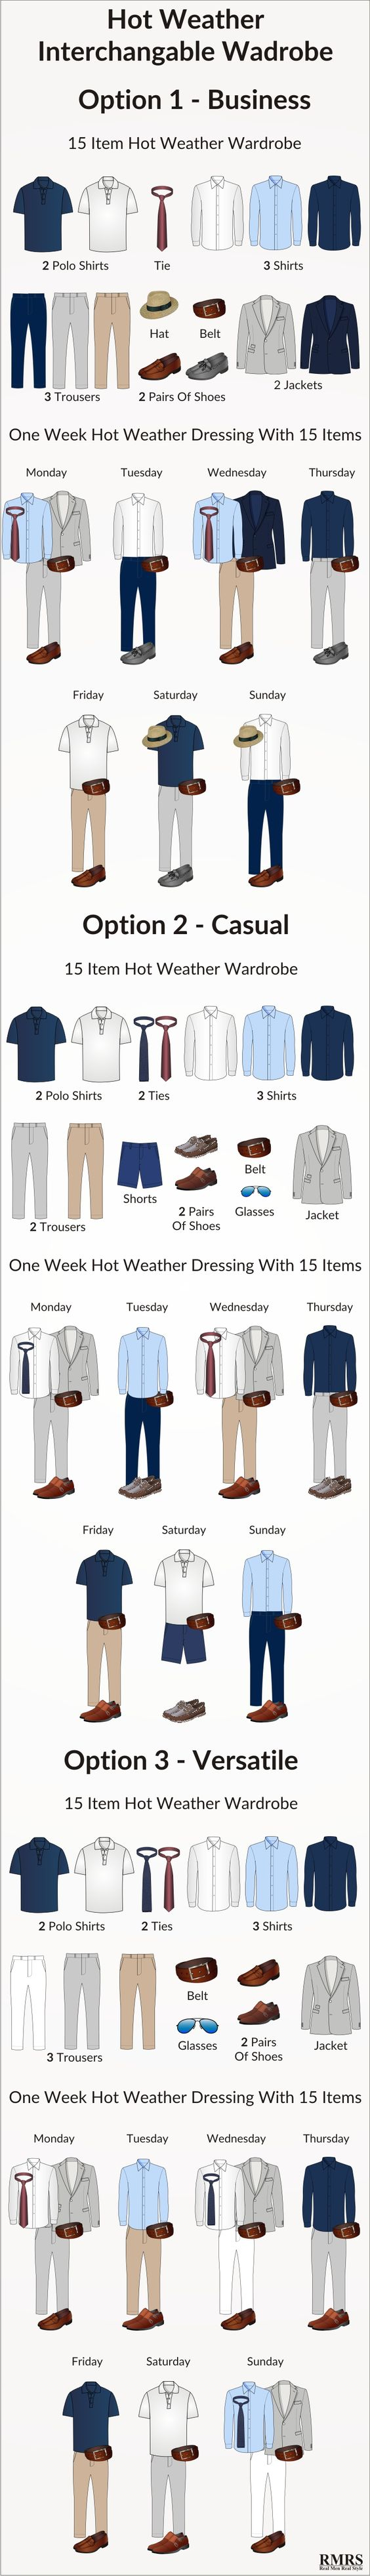 men s wardrobe essentials a visual guide wardrobes socks and